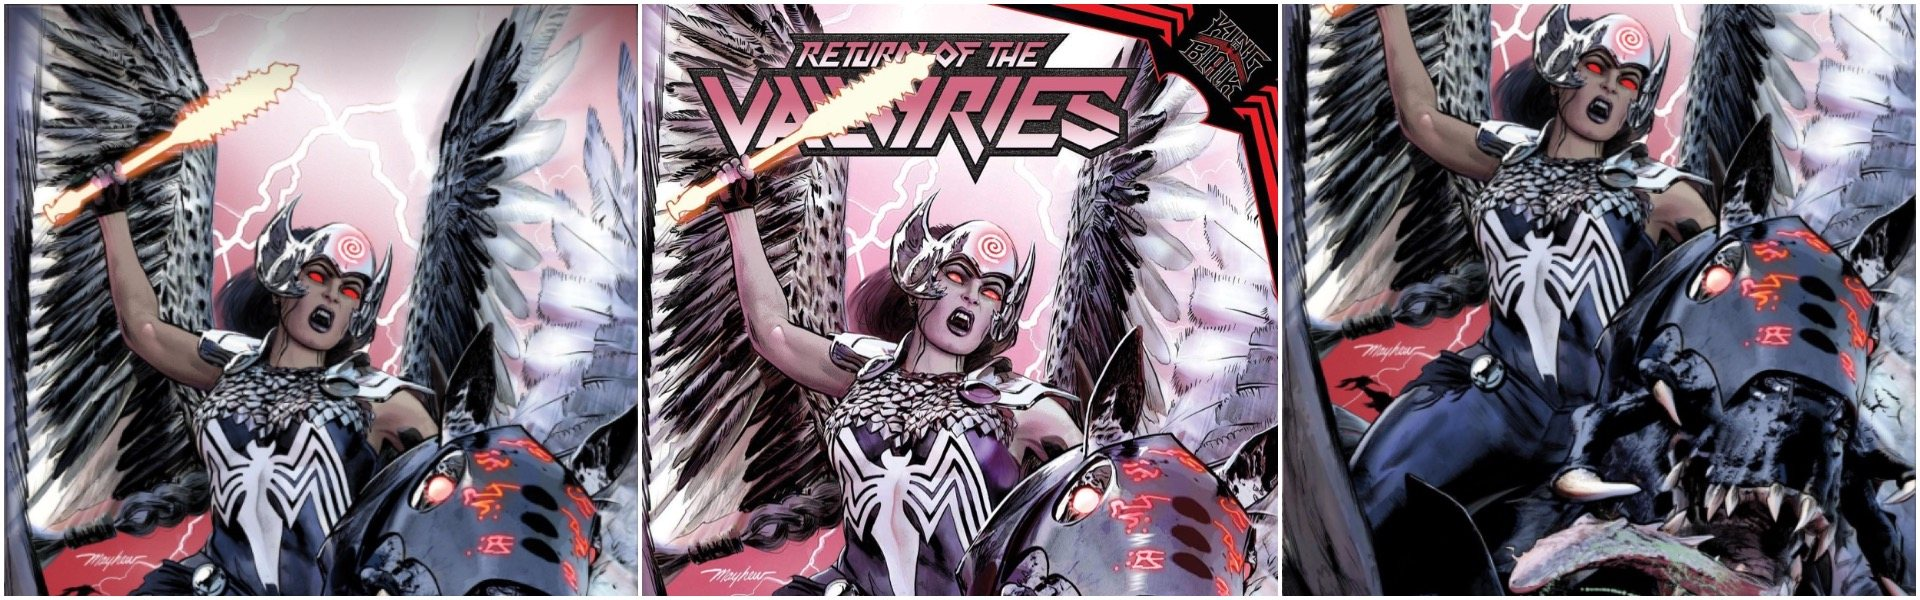 Return of the Valkyries #1 Mike Mayhew Variants